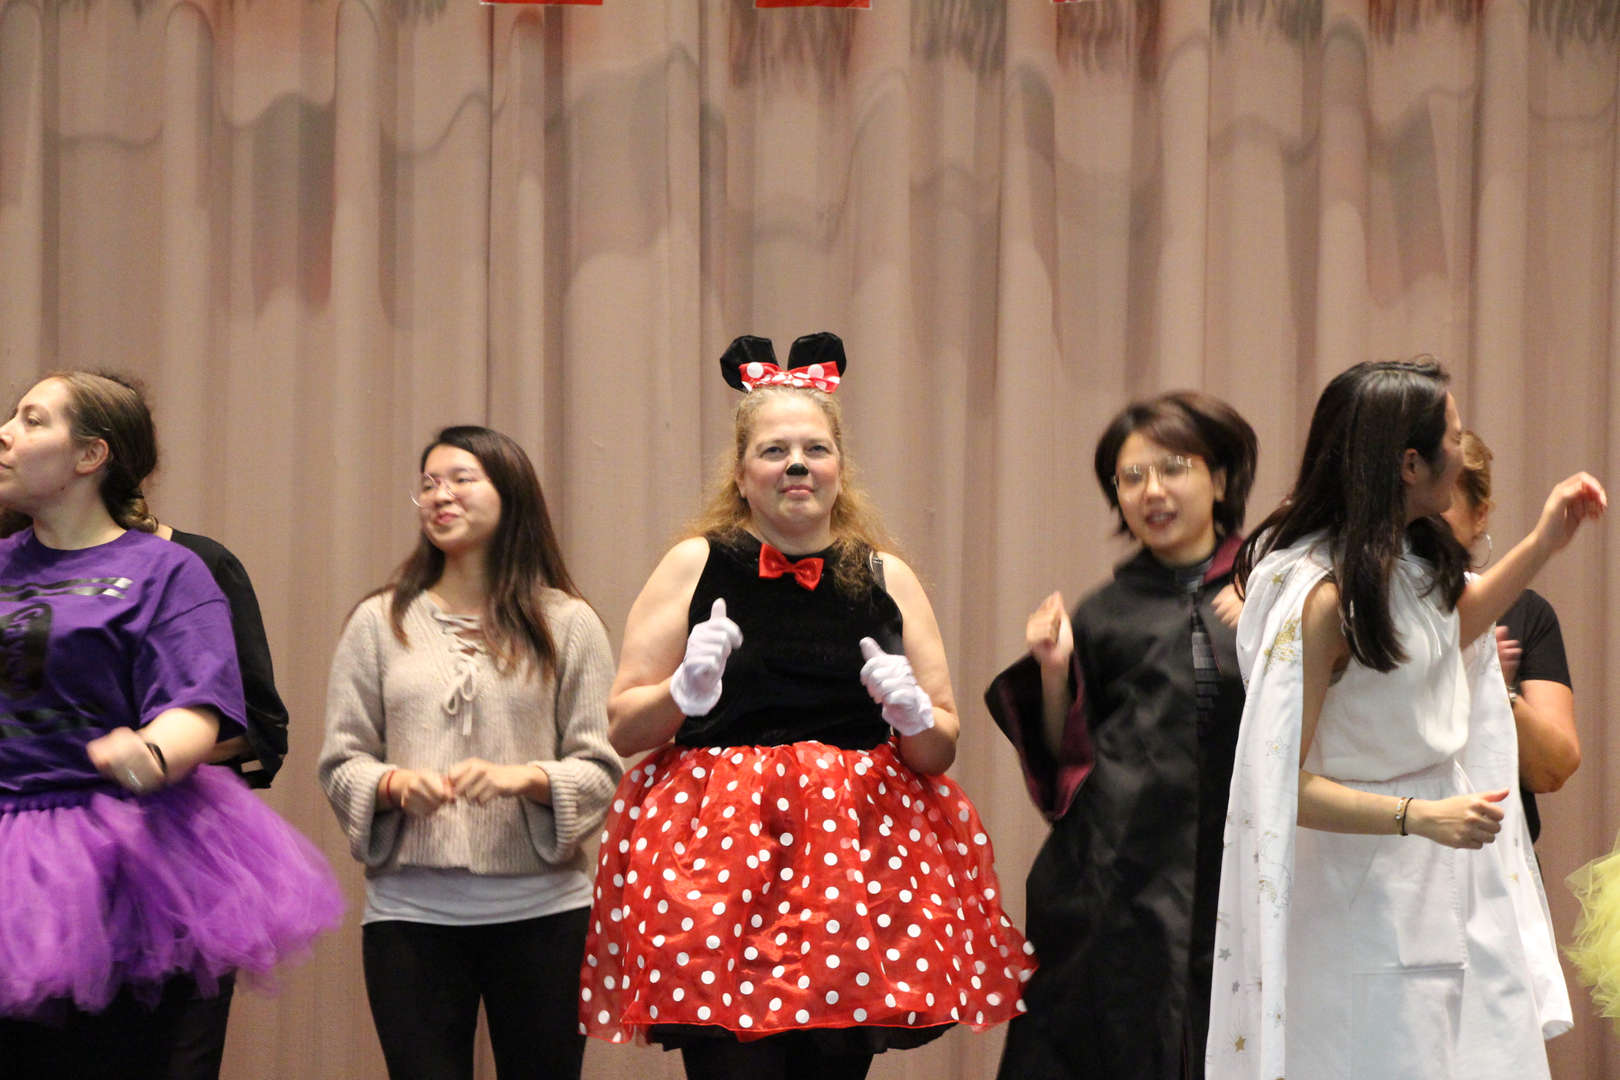 Minnie Mouse busting a move!